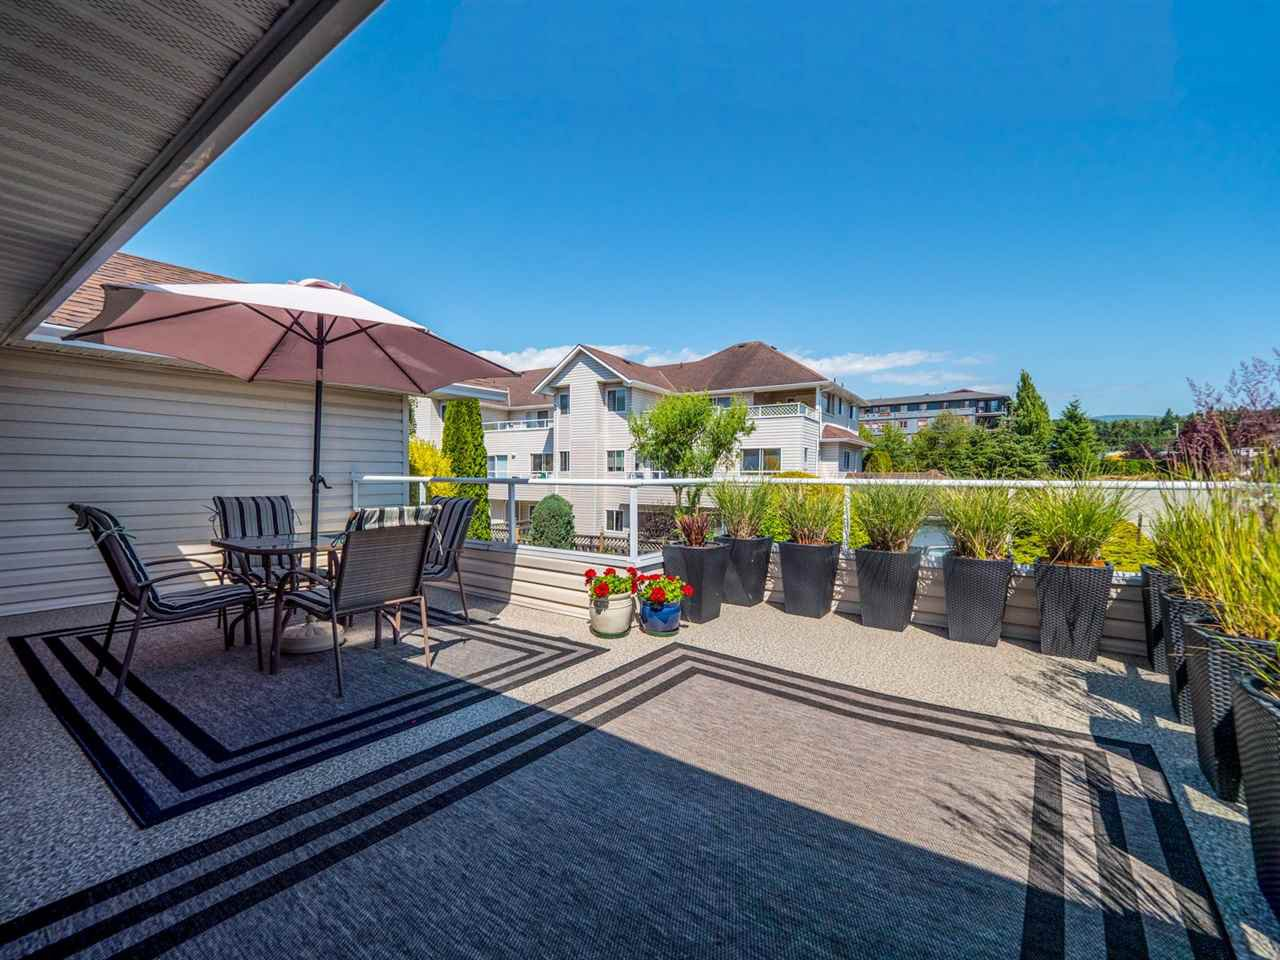 """Photo 17: Photos: 16 5630 TRAIL Avenue in Sechelt: Sechelt District Townhouse for sale in """"HIGHPOINT"""" (Sunshine Coast)  : MLS®# R2382780"""